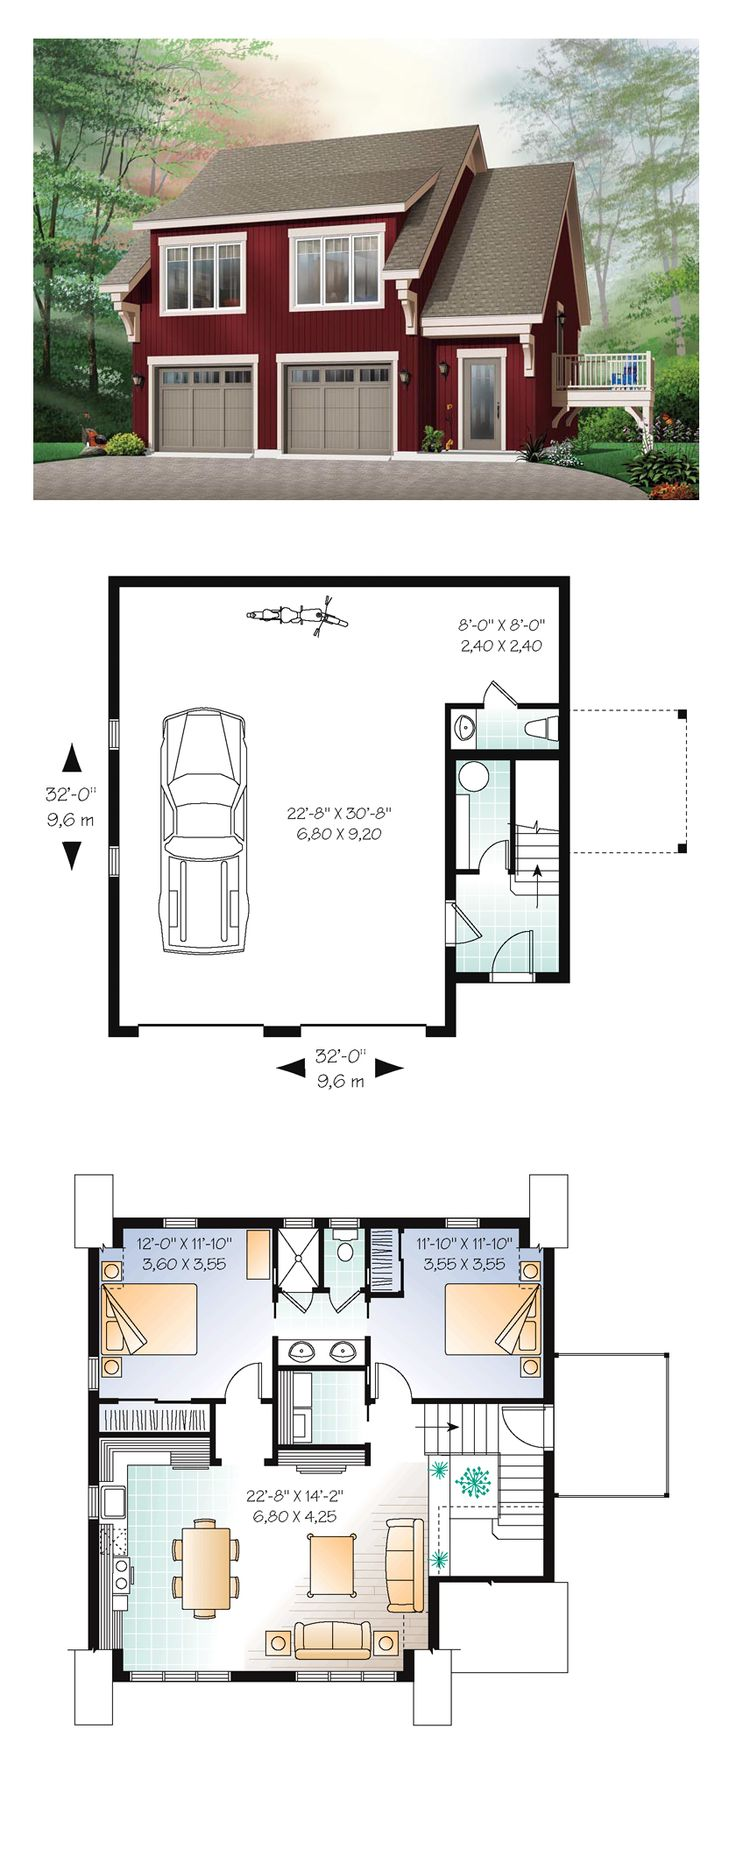 House design 40 x 80 - Cool Idea For A Guest House Garage Apartment Plan 64817